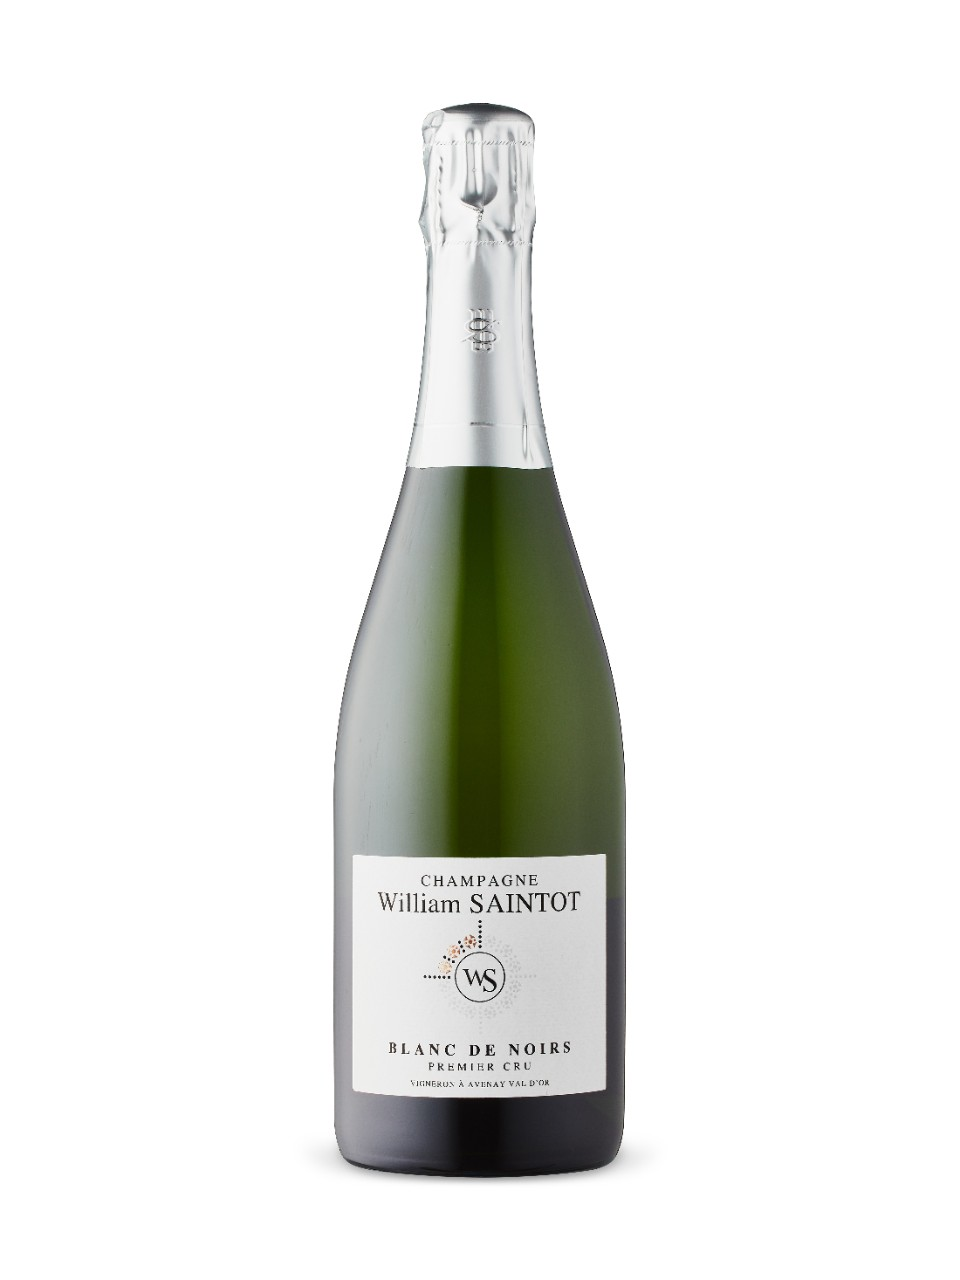 Champagne William Saintot Blanc de Noirs from LCBO